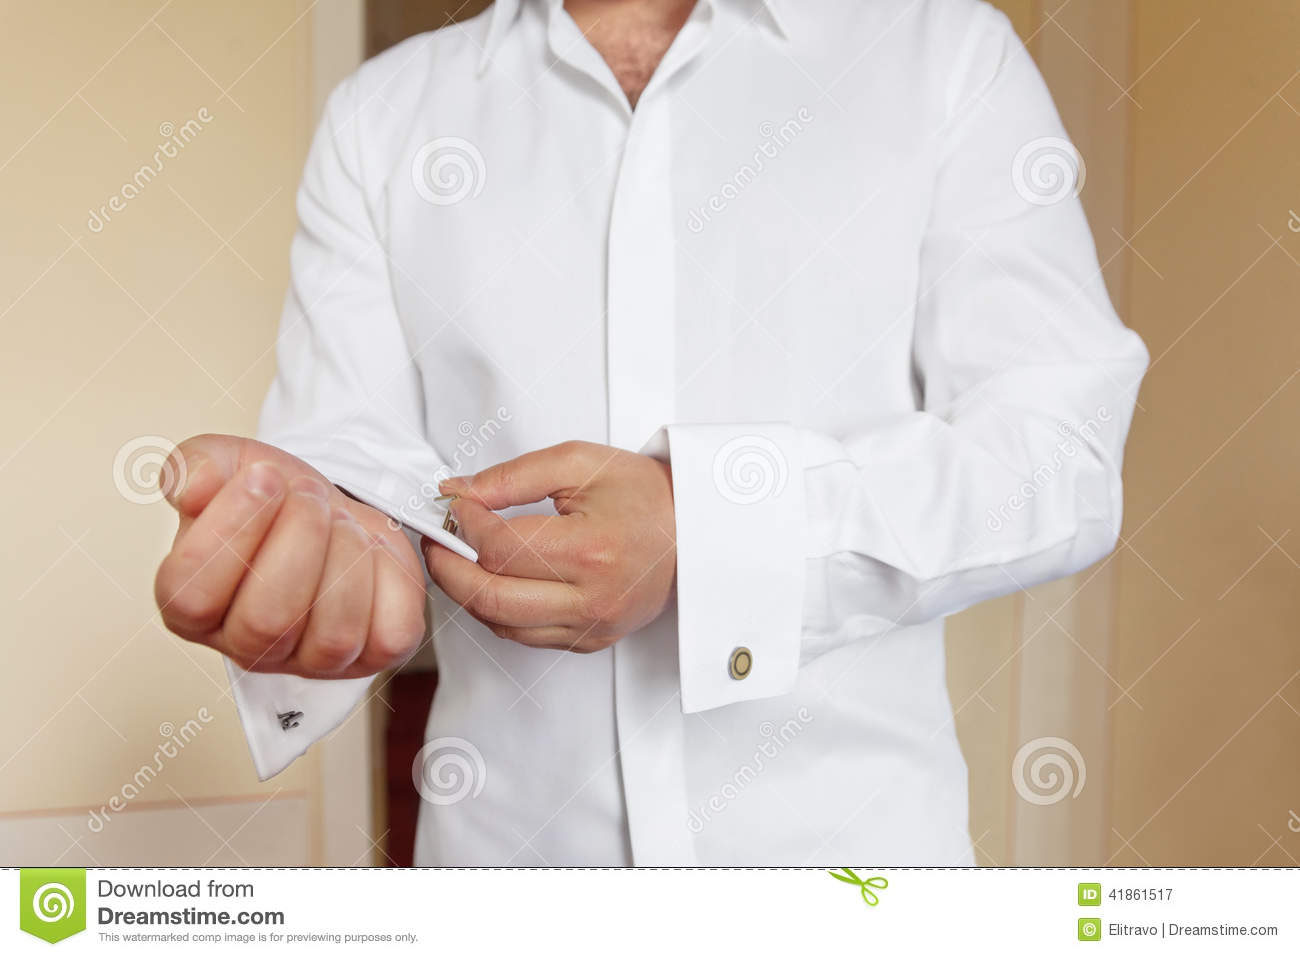 Cufflinks White Shirt Stock Photos, Images, & Pictures - 1,211 Images